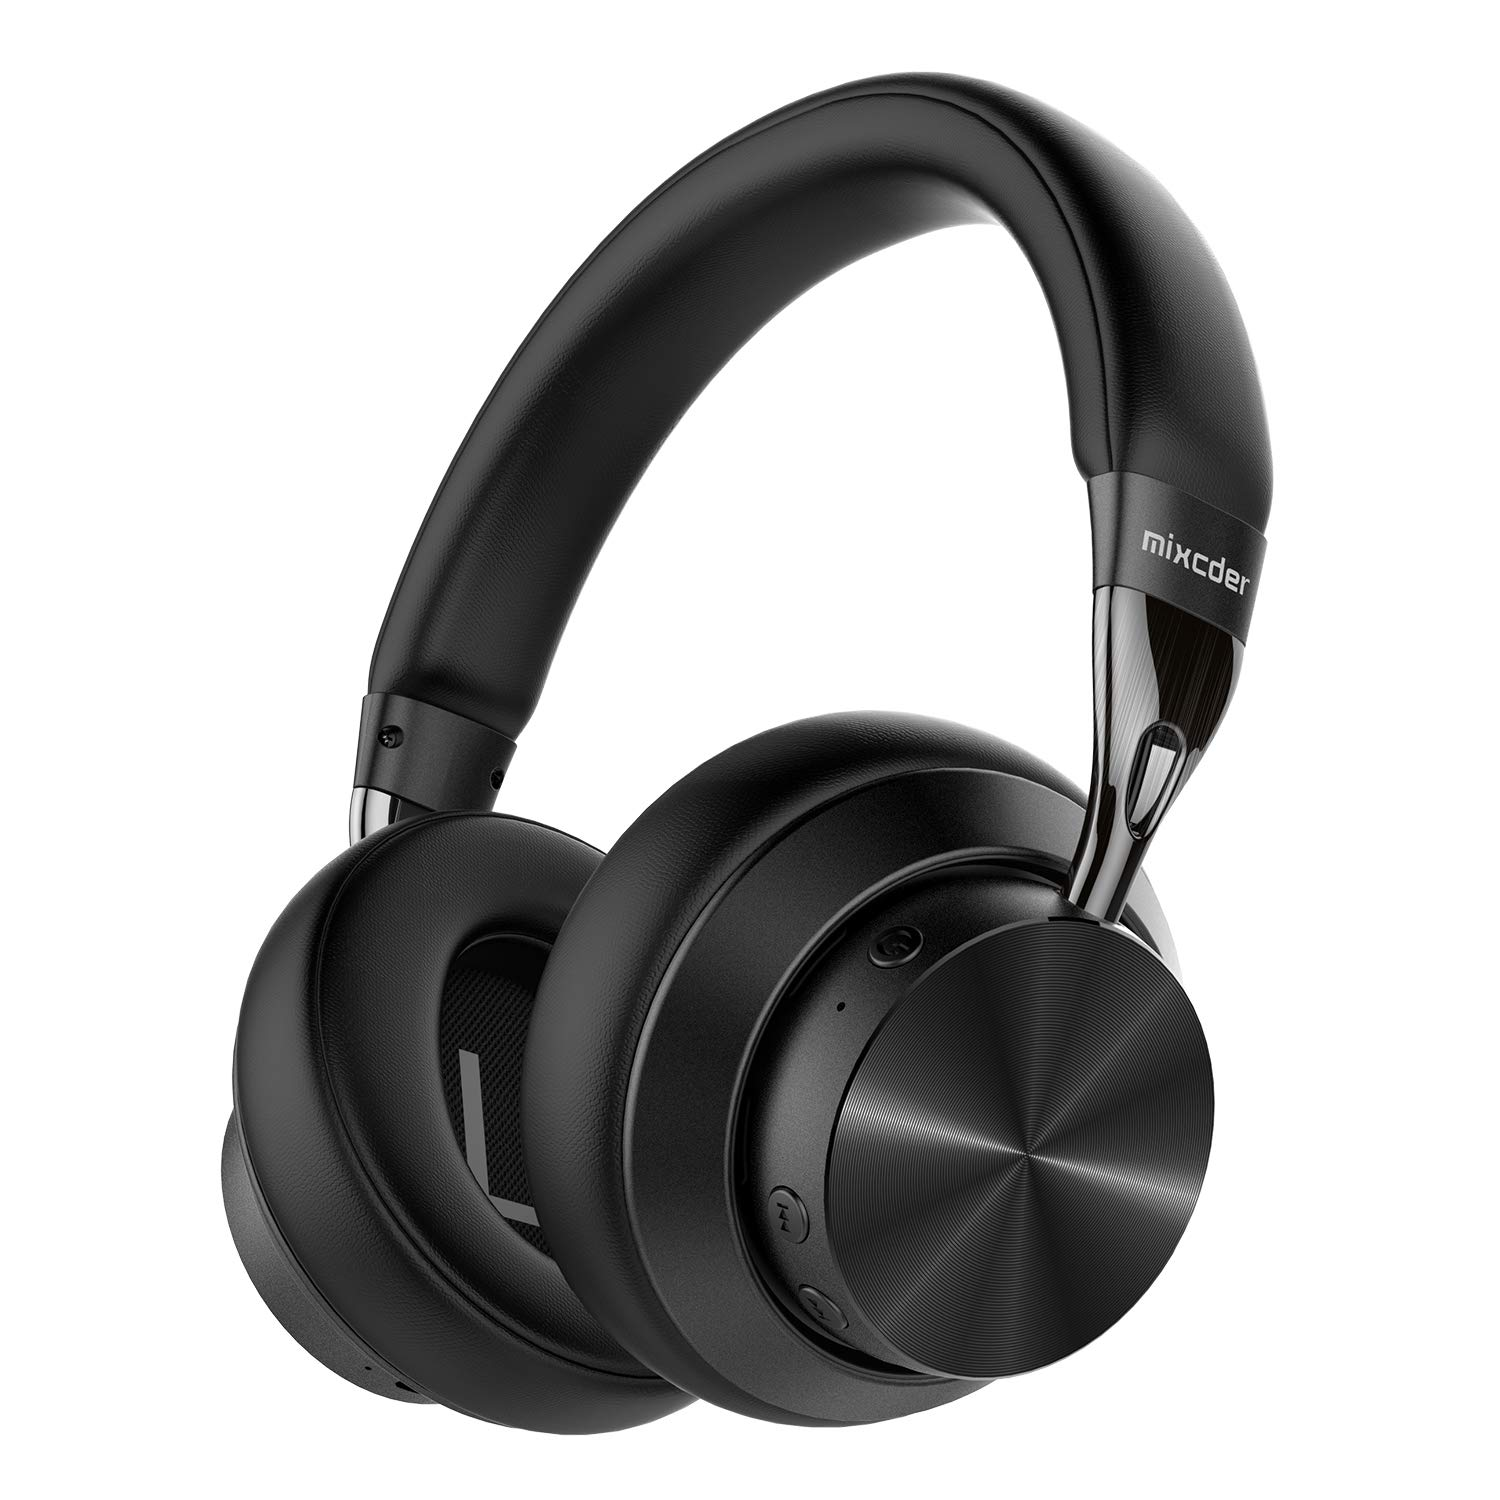 Mixcder E10 Active Noise Cancelling Headphones Wireless Bluetooth 5.0 Foldable Over Ear Headphones with aptX, Quick Charge, Hi-Fi Stereo Sound, 30 Hours Playtime, Black